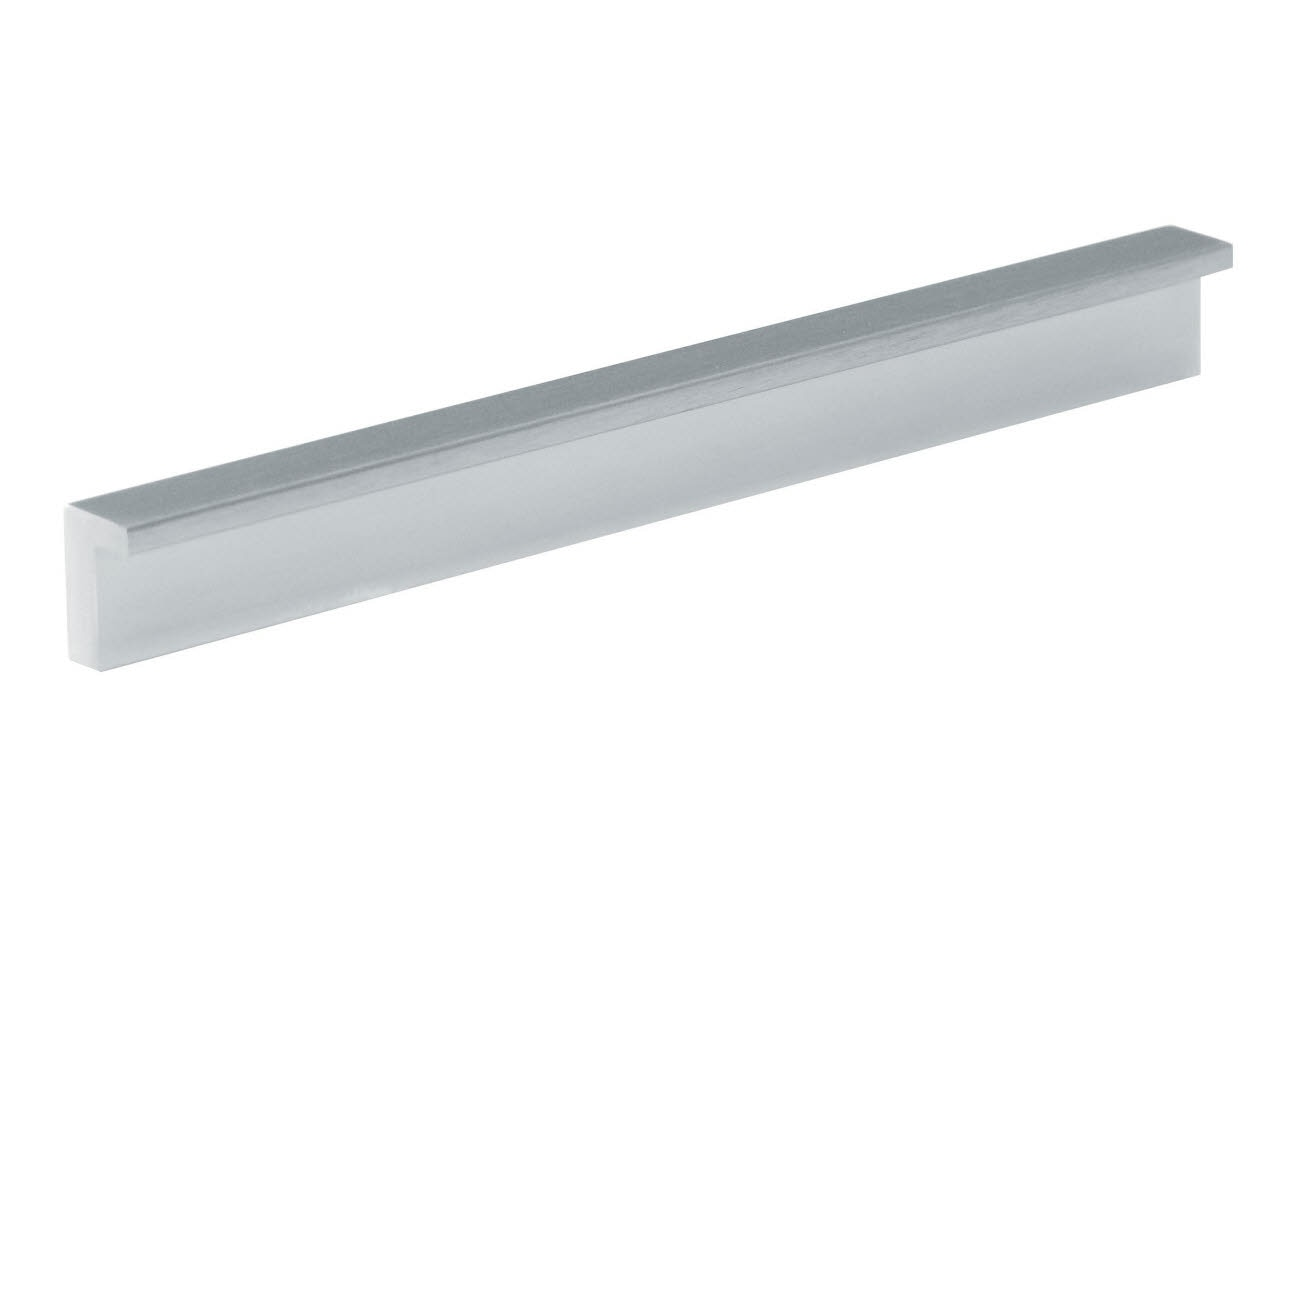 Metal handle profile stainless steel coloured